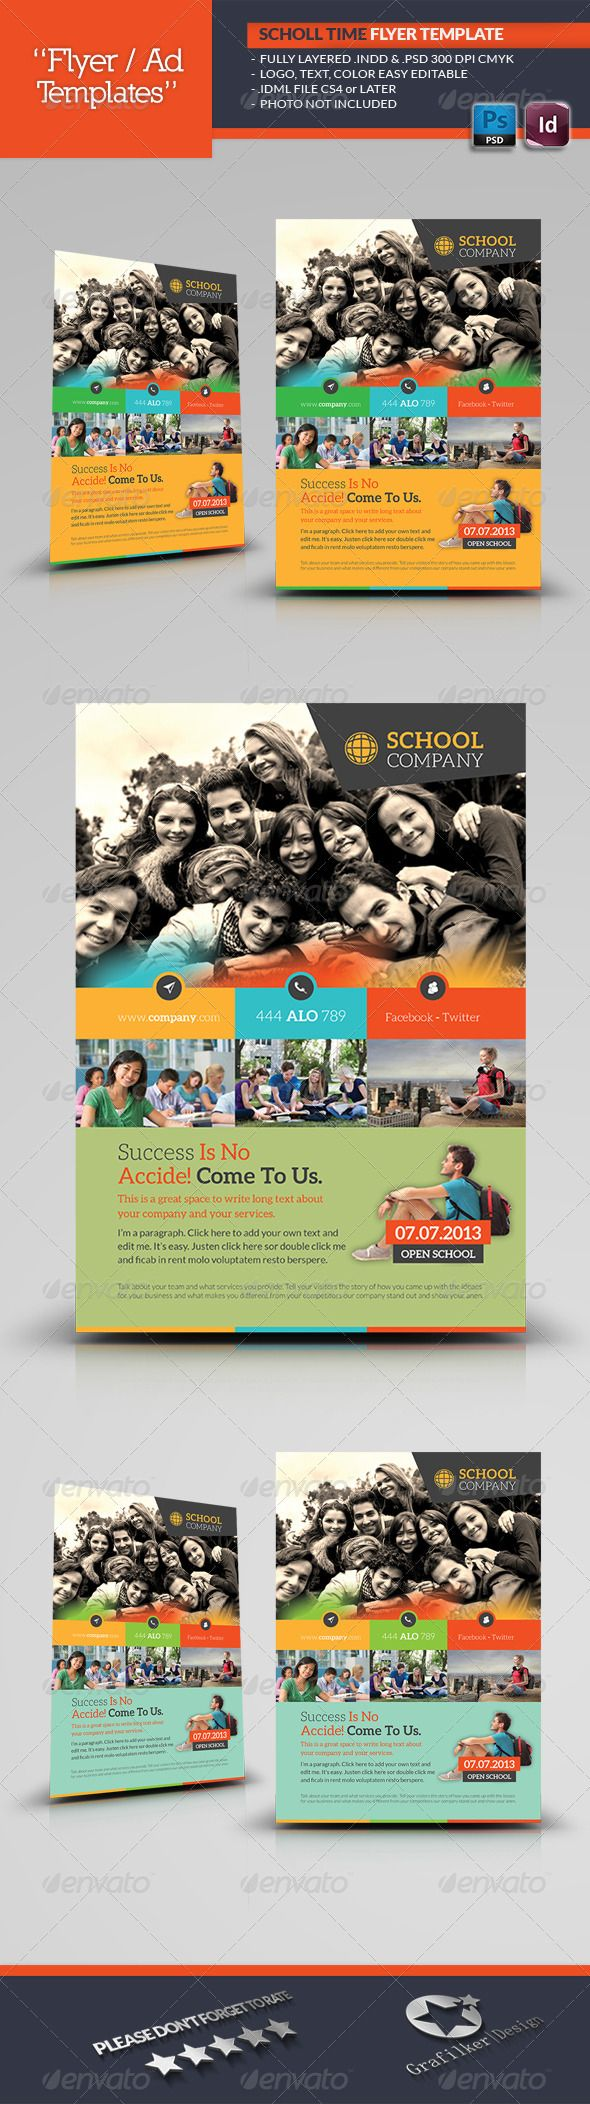 School Time Flyer Template — Photoshop PSD #time #sports school • Available here → https://graphicriver.net/item/school-time-flyer-template/5816101?ref=pxcr